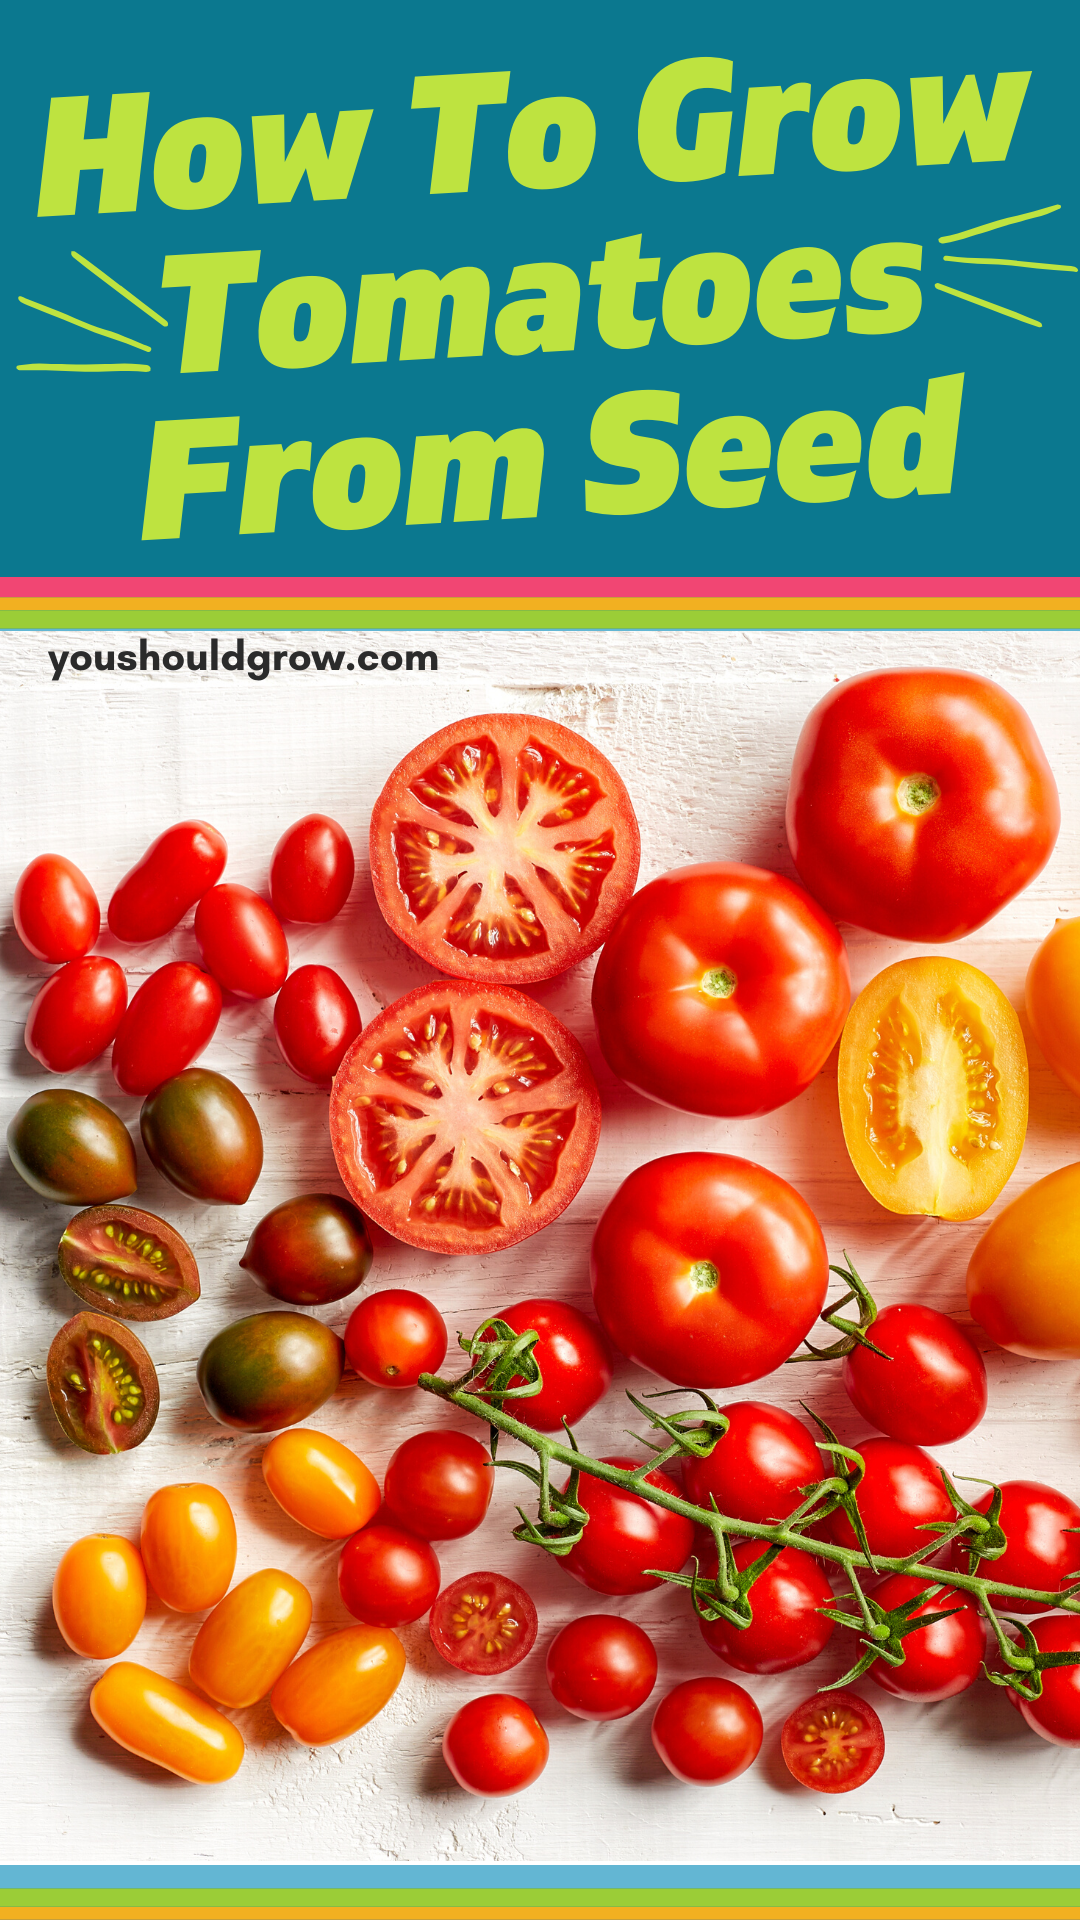 Growing Tomatoes From Seed You Can In 2020 Growing Tomatoes Growing Tomatoes From Seed Tomato